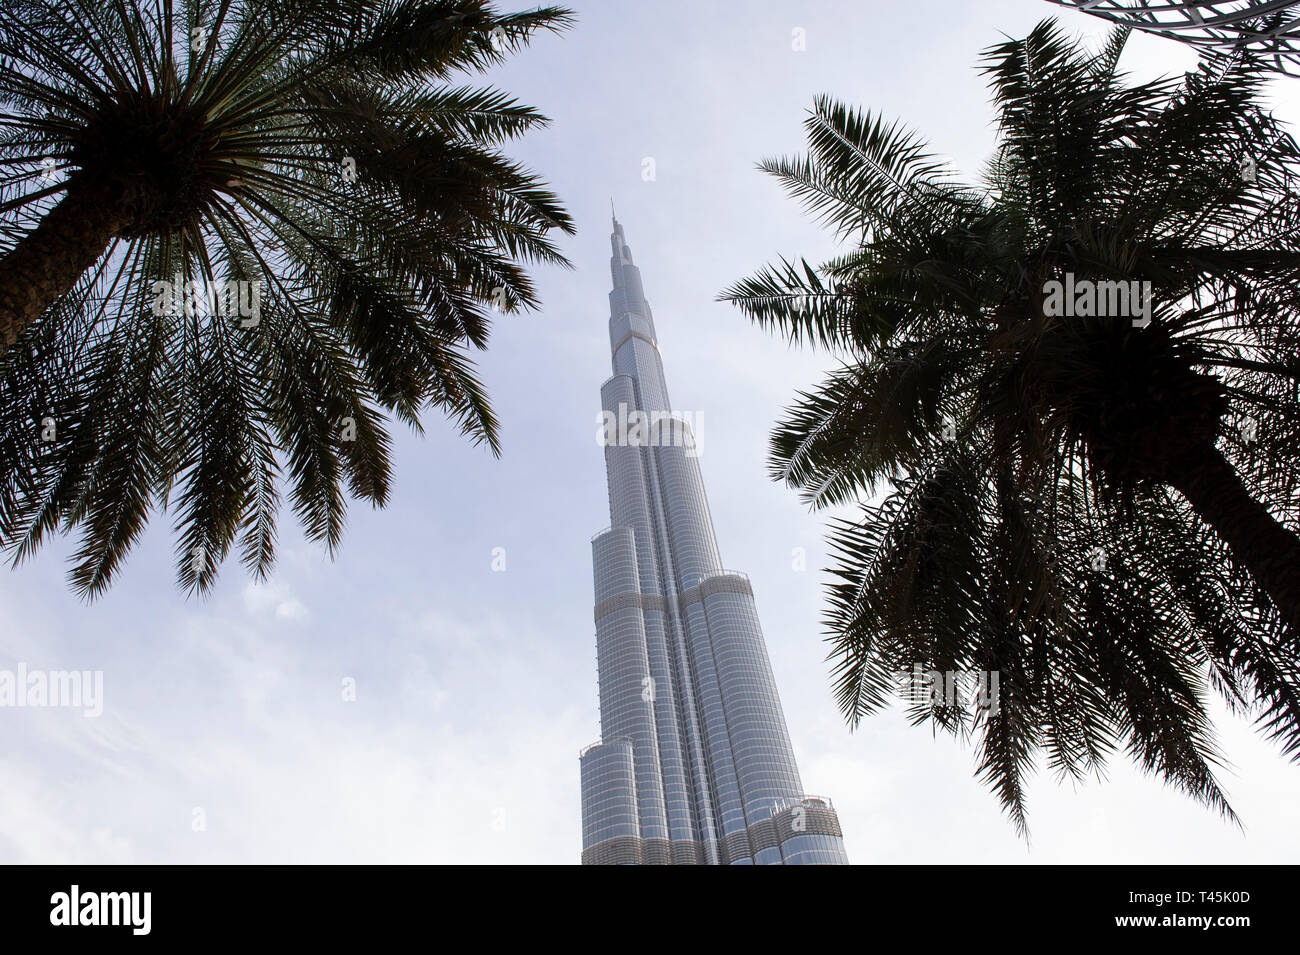 The Burj Khalifa, the tallest building in the world, located in Downtown Dubai in the UAE (United Arab Emirates) - Stock Image